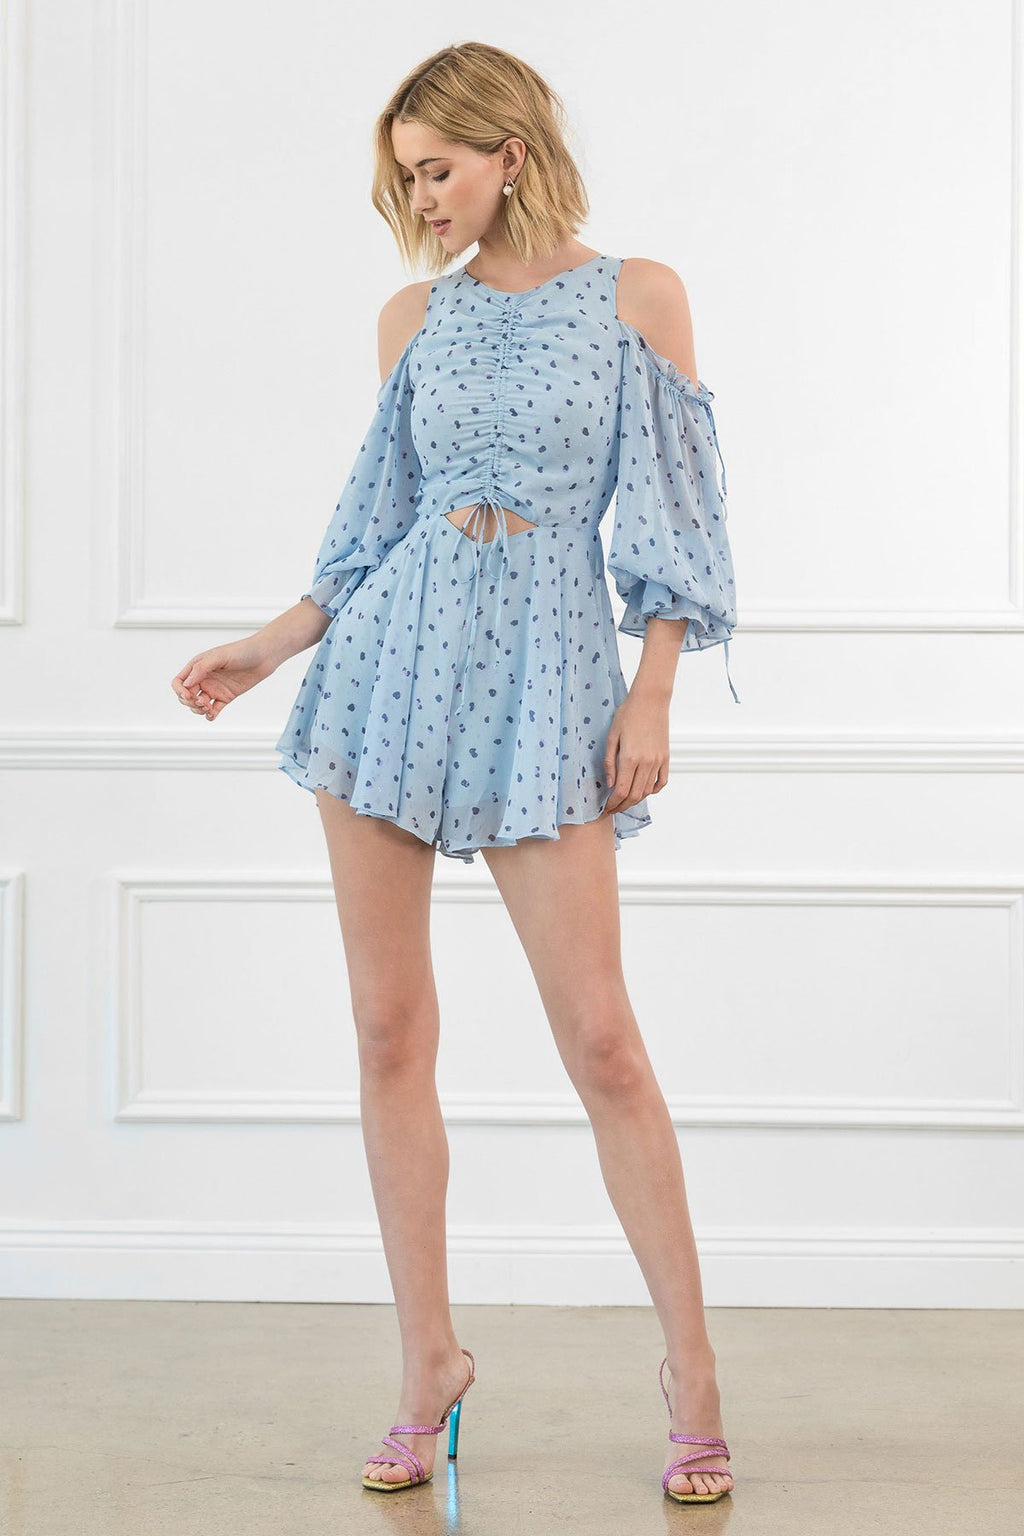 Bluebell Cutout Shoulder Dress in Dresses by J.ING - an L.A based women's fashion line